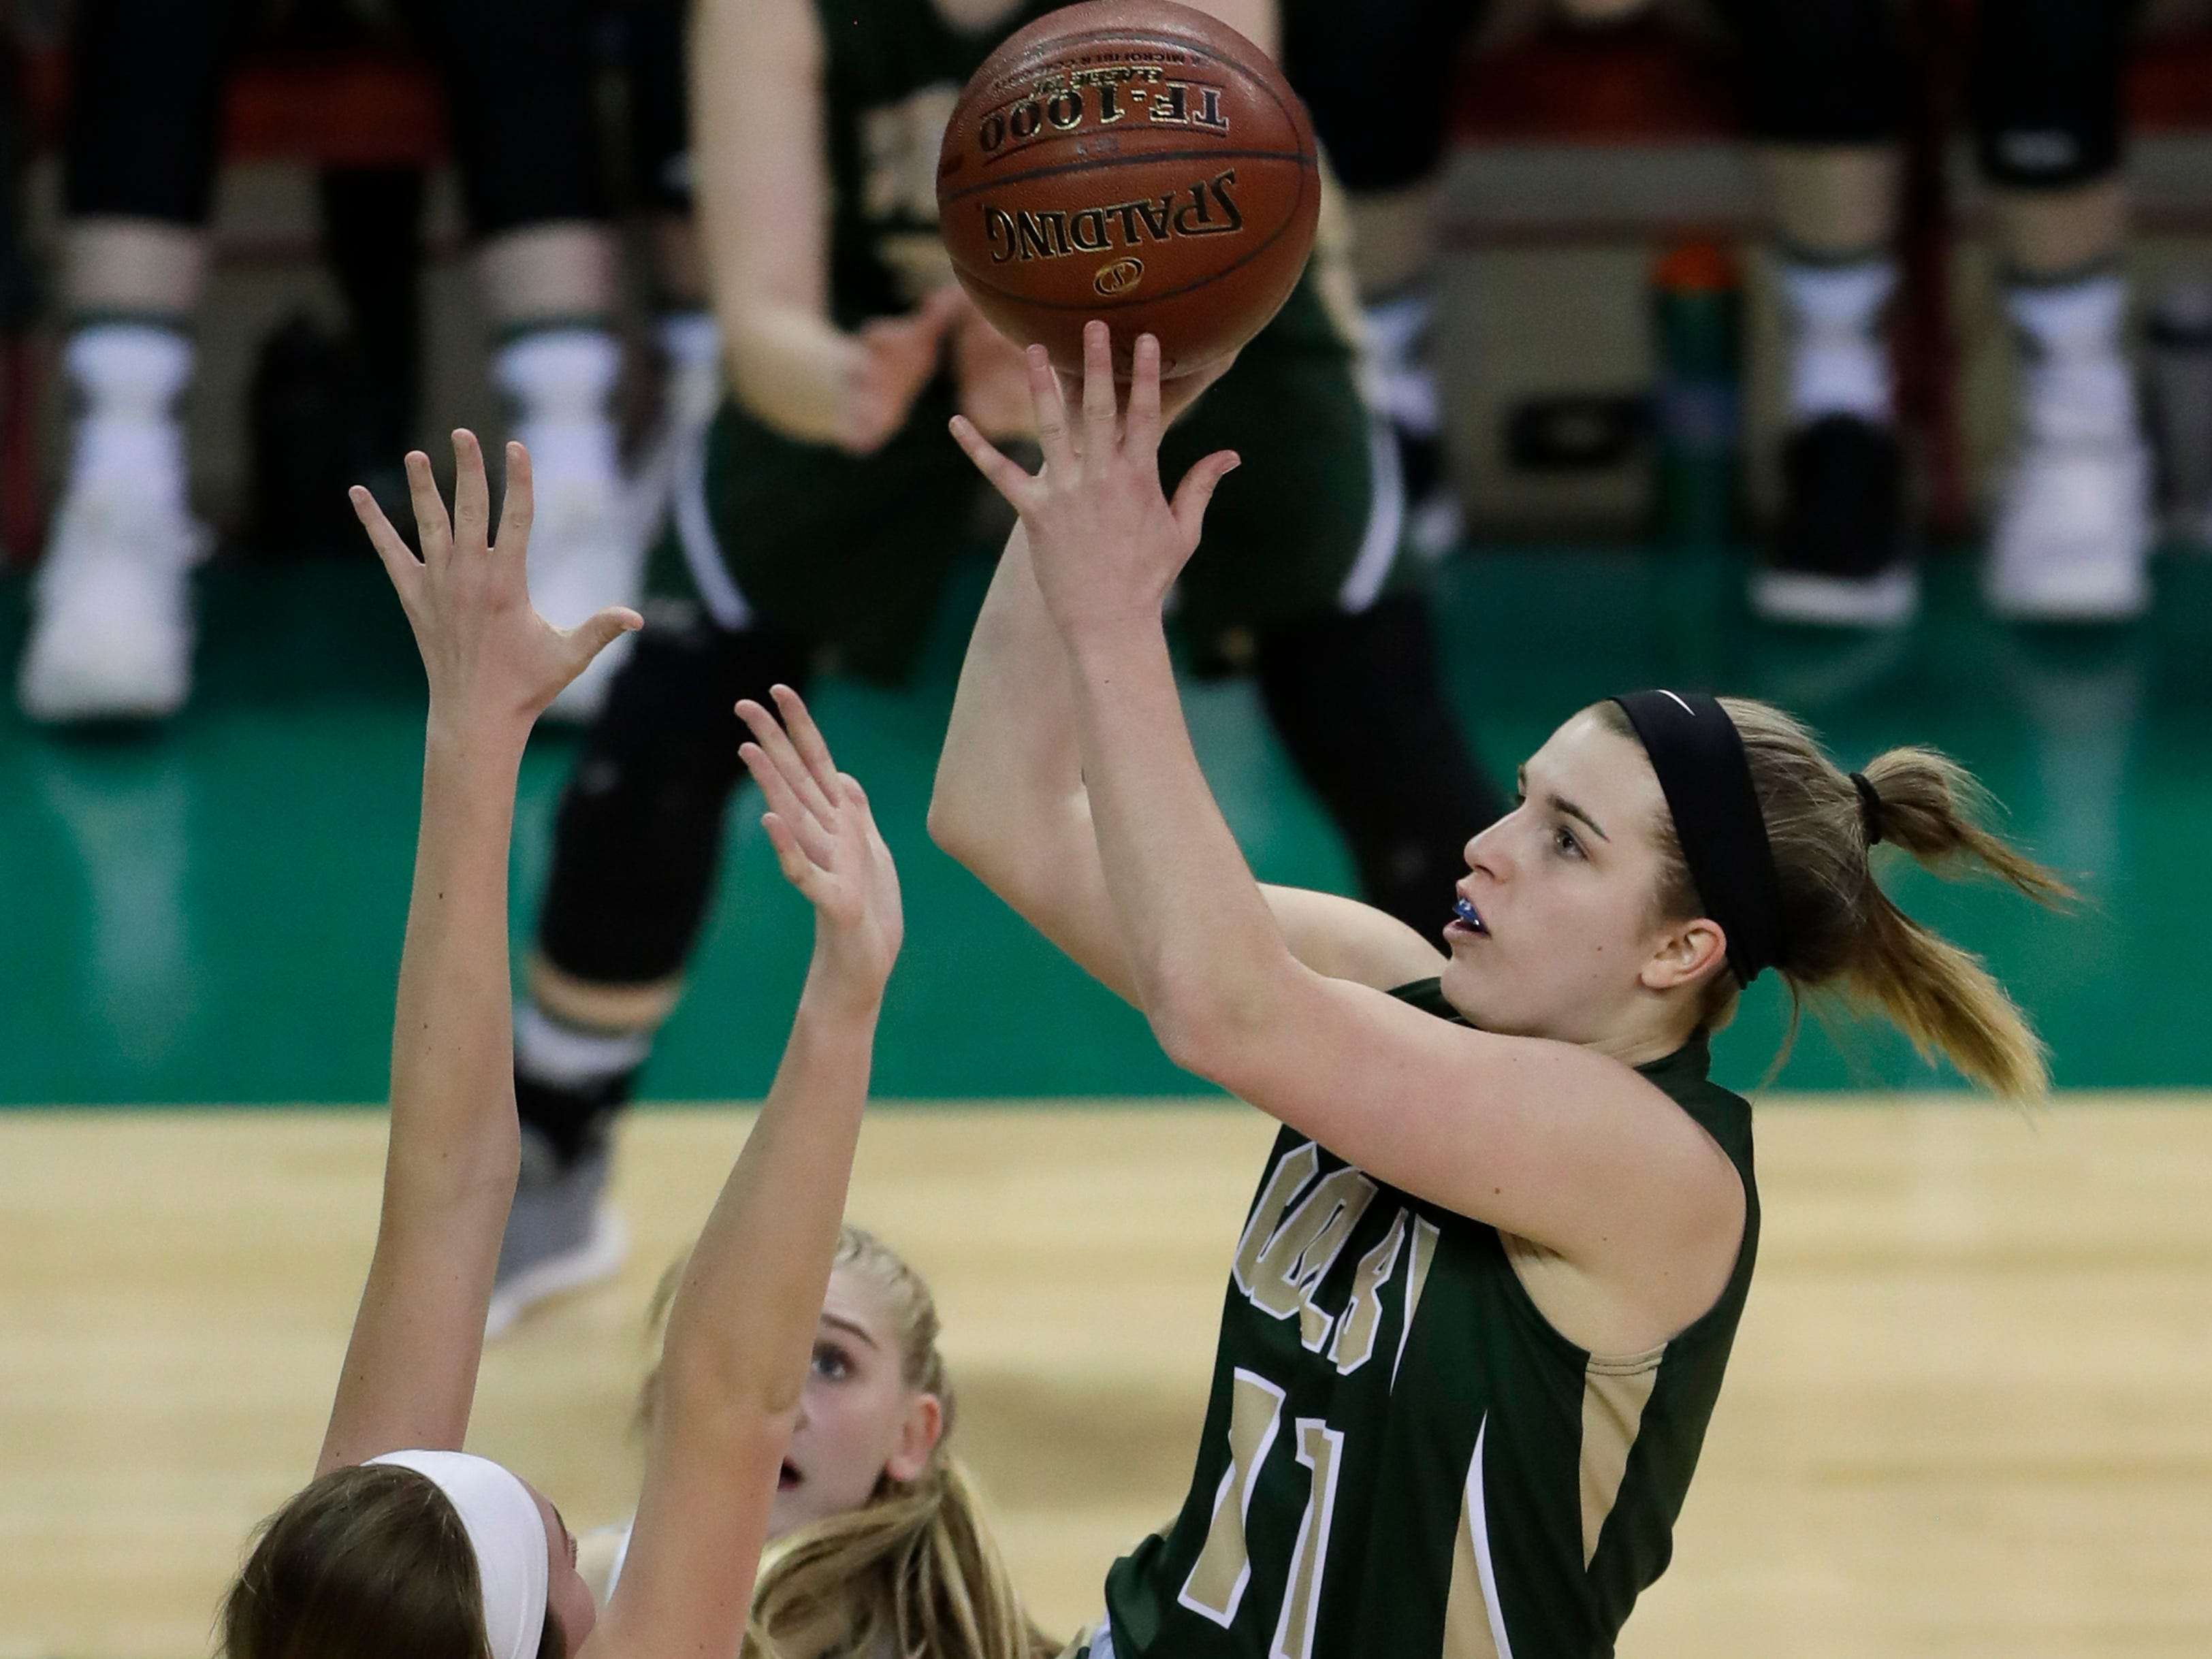 Colby's Hailey Voelker (11) shoots against Melrose-Mindoro's Mesa Byom (12) during their Division 4 semifinal game at the WIAA girls state basketball tournament Thursday, March 7, 2019, at the Resch Center in Ashwaubenon, Wis.